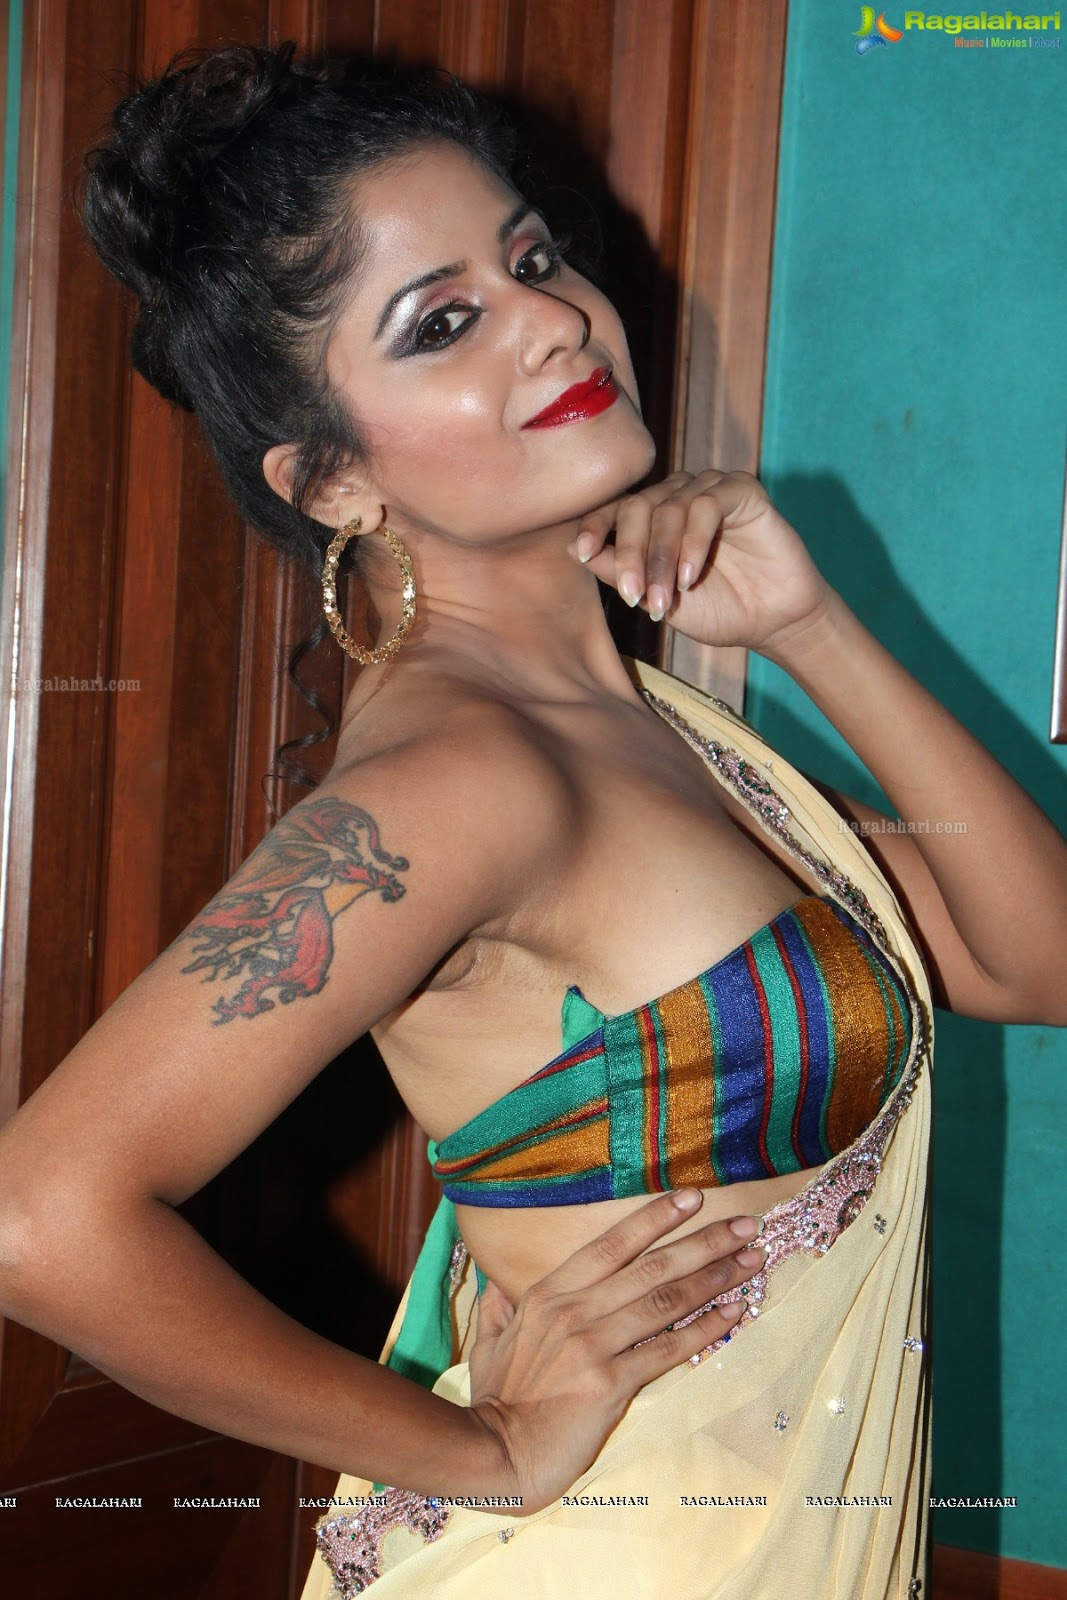 Anukriti Govind Sharma Showing Awesome Armpit Hot Bulging Melons In Bikini Blouse..Spicy..!!  Anukriti Govind Sharma Sexy Armpit  Anukriti Govind Sharma Nude Spicy Armpit Show In BRA & Panty..Don't Miss!!! Anukriti Govind Sharma Pose- unseen Photography Showing Armpit.  Anukriti Govind Sharma Boobs and Armpit Show   Anukriti Govind Sharma hot armpit show in saree  Anukriti Govind Sharma Hot Photo Shoot, Anukriti Govind Sharma Hot Photos,Actress  Anukriti Govind Sharma Latest Photos, Anukriti Govind Sharma Hot Photos, Anukriti Govind Sharma Spicy Stills, Anukriti Govind Sharma Spicy Pics, Anukriti Govind Sharma Hot Stills, Anukriti Govind Sharma Wallpapers, Anukriti Govind Sharma Photos, Anukriti Govind Sharma Images, Anukriti Govind Sharma SareE Photos, Anukriti Govind Sharma Navel Show Photos, Anukriti Govind Sharma Stills, Anukriti Govind Sharma, Anukriti Govind Sharma Hot Photo Shoot  Anukriti Govind Sharma Armpit and Nipple Show boobs show Armpit Actress   Anukriti Govind Sharma  Smoking Hot & Spicy Pics In a Bikini... Armpit Actress   Anukriti Govind Sharma  Latest Smoking Hot & Spicy Portfolio Pics...Don't Miss..!! Armpit Actress   Anukriti Govind Sharma  Sexy Babe's Latest Spicy Photoshoot Pics.. Armpit Actress   Anukriti Govind Sharma  Showing Her Awesome Hot Thighs..Spicy Pics... Armpit Actress   Anukriti Govind Sharma  Spicy Low Neck Massieve Melons Armpit Actress   Anukriti Govind Sharma  photos, Armpit Actress   Anukriti Govind Sharma  bikini photos, Actress bikini photos, Armpit Actress   Anukriti Govind Sharma  hot bikini, Armpit Actress   Anukriti Govind Sharma  bikini pics, Armpit Actress   Anukriti Govind Sharma  spicy stills, Armpit Actress Sravya, Armpit Actress   Anukriti Govind Sharma  photos  Anukriti Govind Sharma  armpit show  Anukriti Govind Sharma Smoking Hot & Sexy Photoshoot In aSexy Shorts & Sleevless Top..  Anukriti Govind Sharma Showing Her Awesome Hot Thunder Thighs In a Blue Mini Skirt....  Anukriti Govind Sharma,  Anukriti Govind Sh